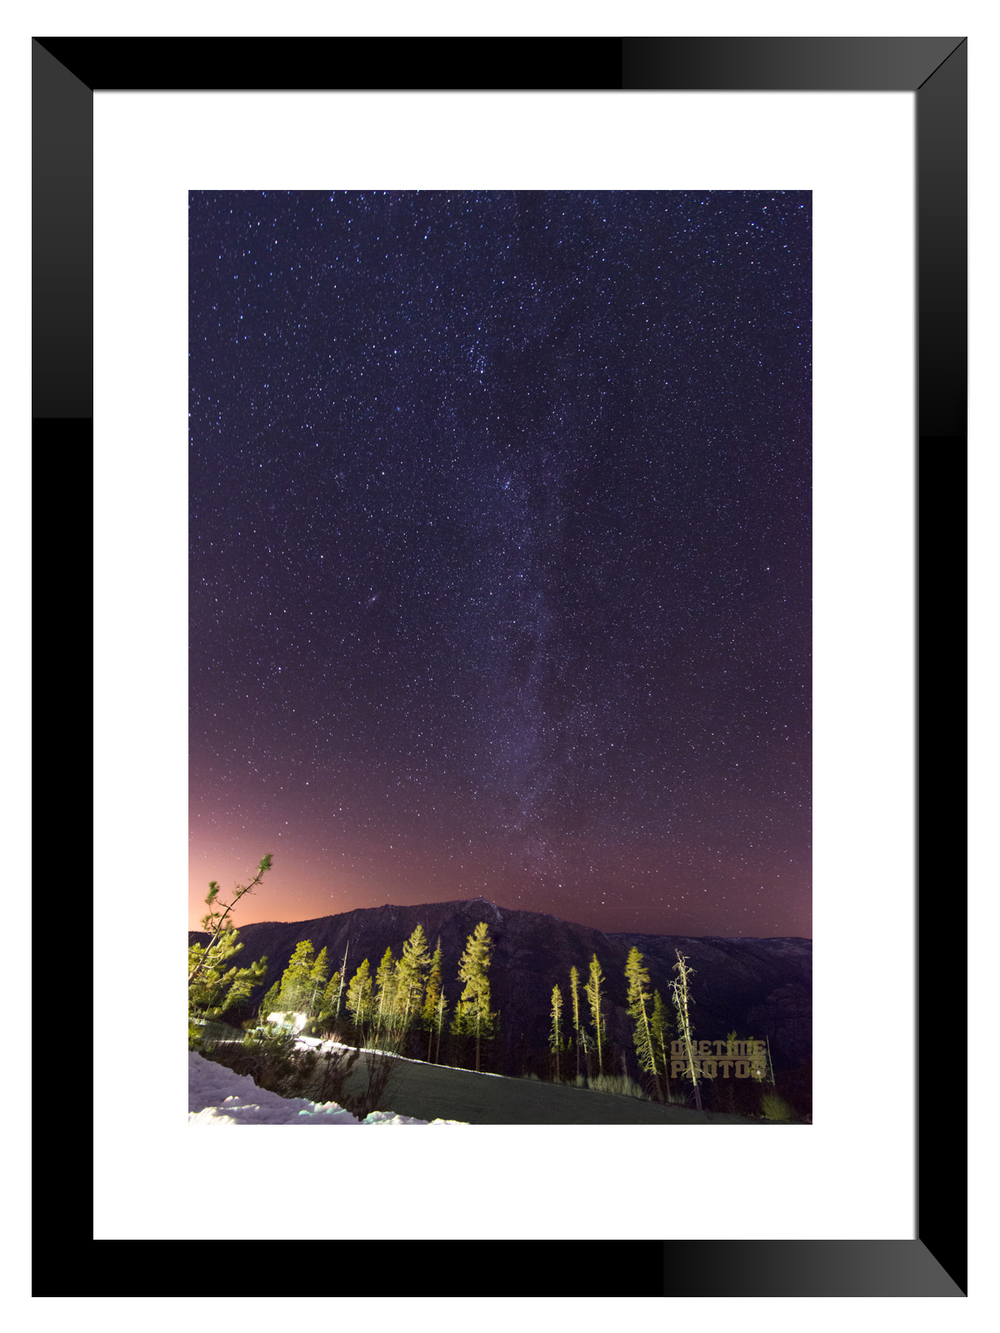 One of the many prints that I have up for sale. Framed to give you an idea on how it will look!